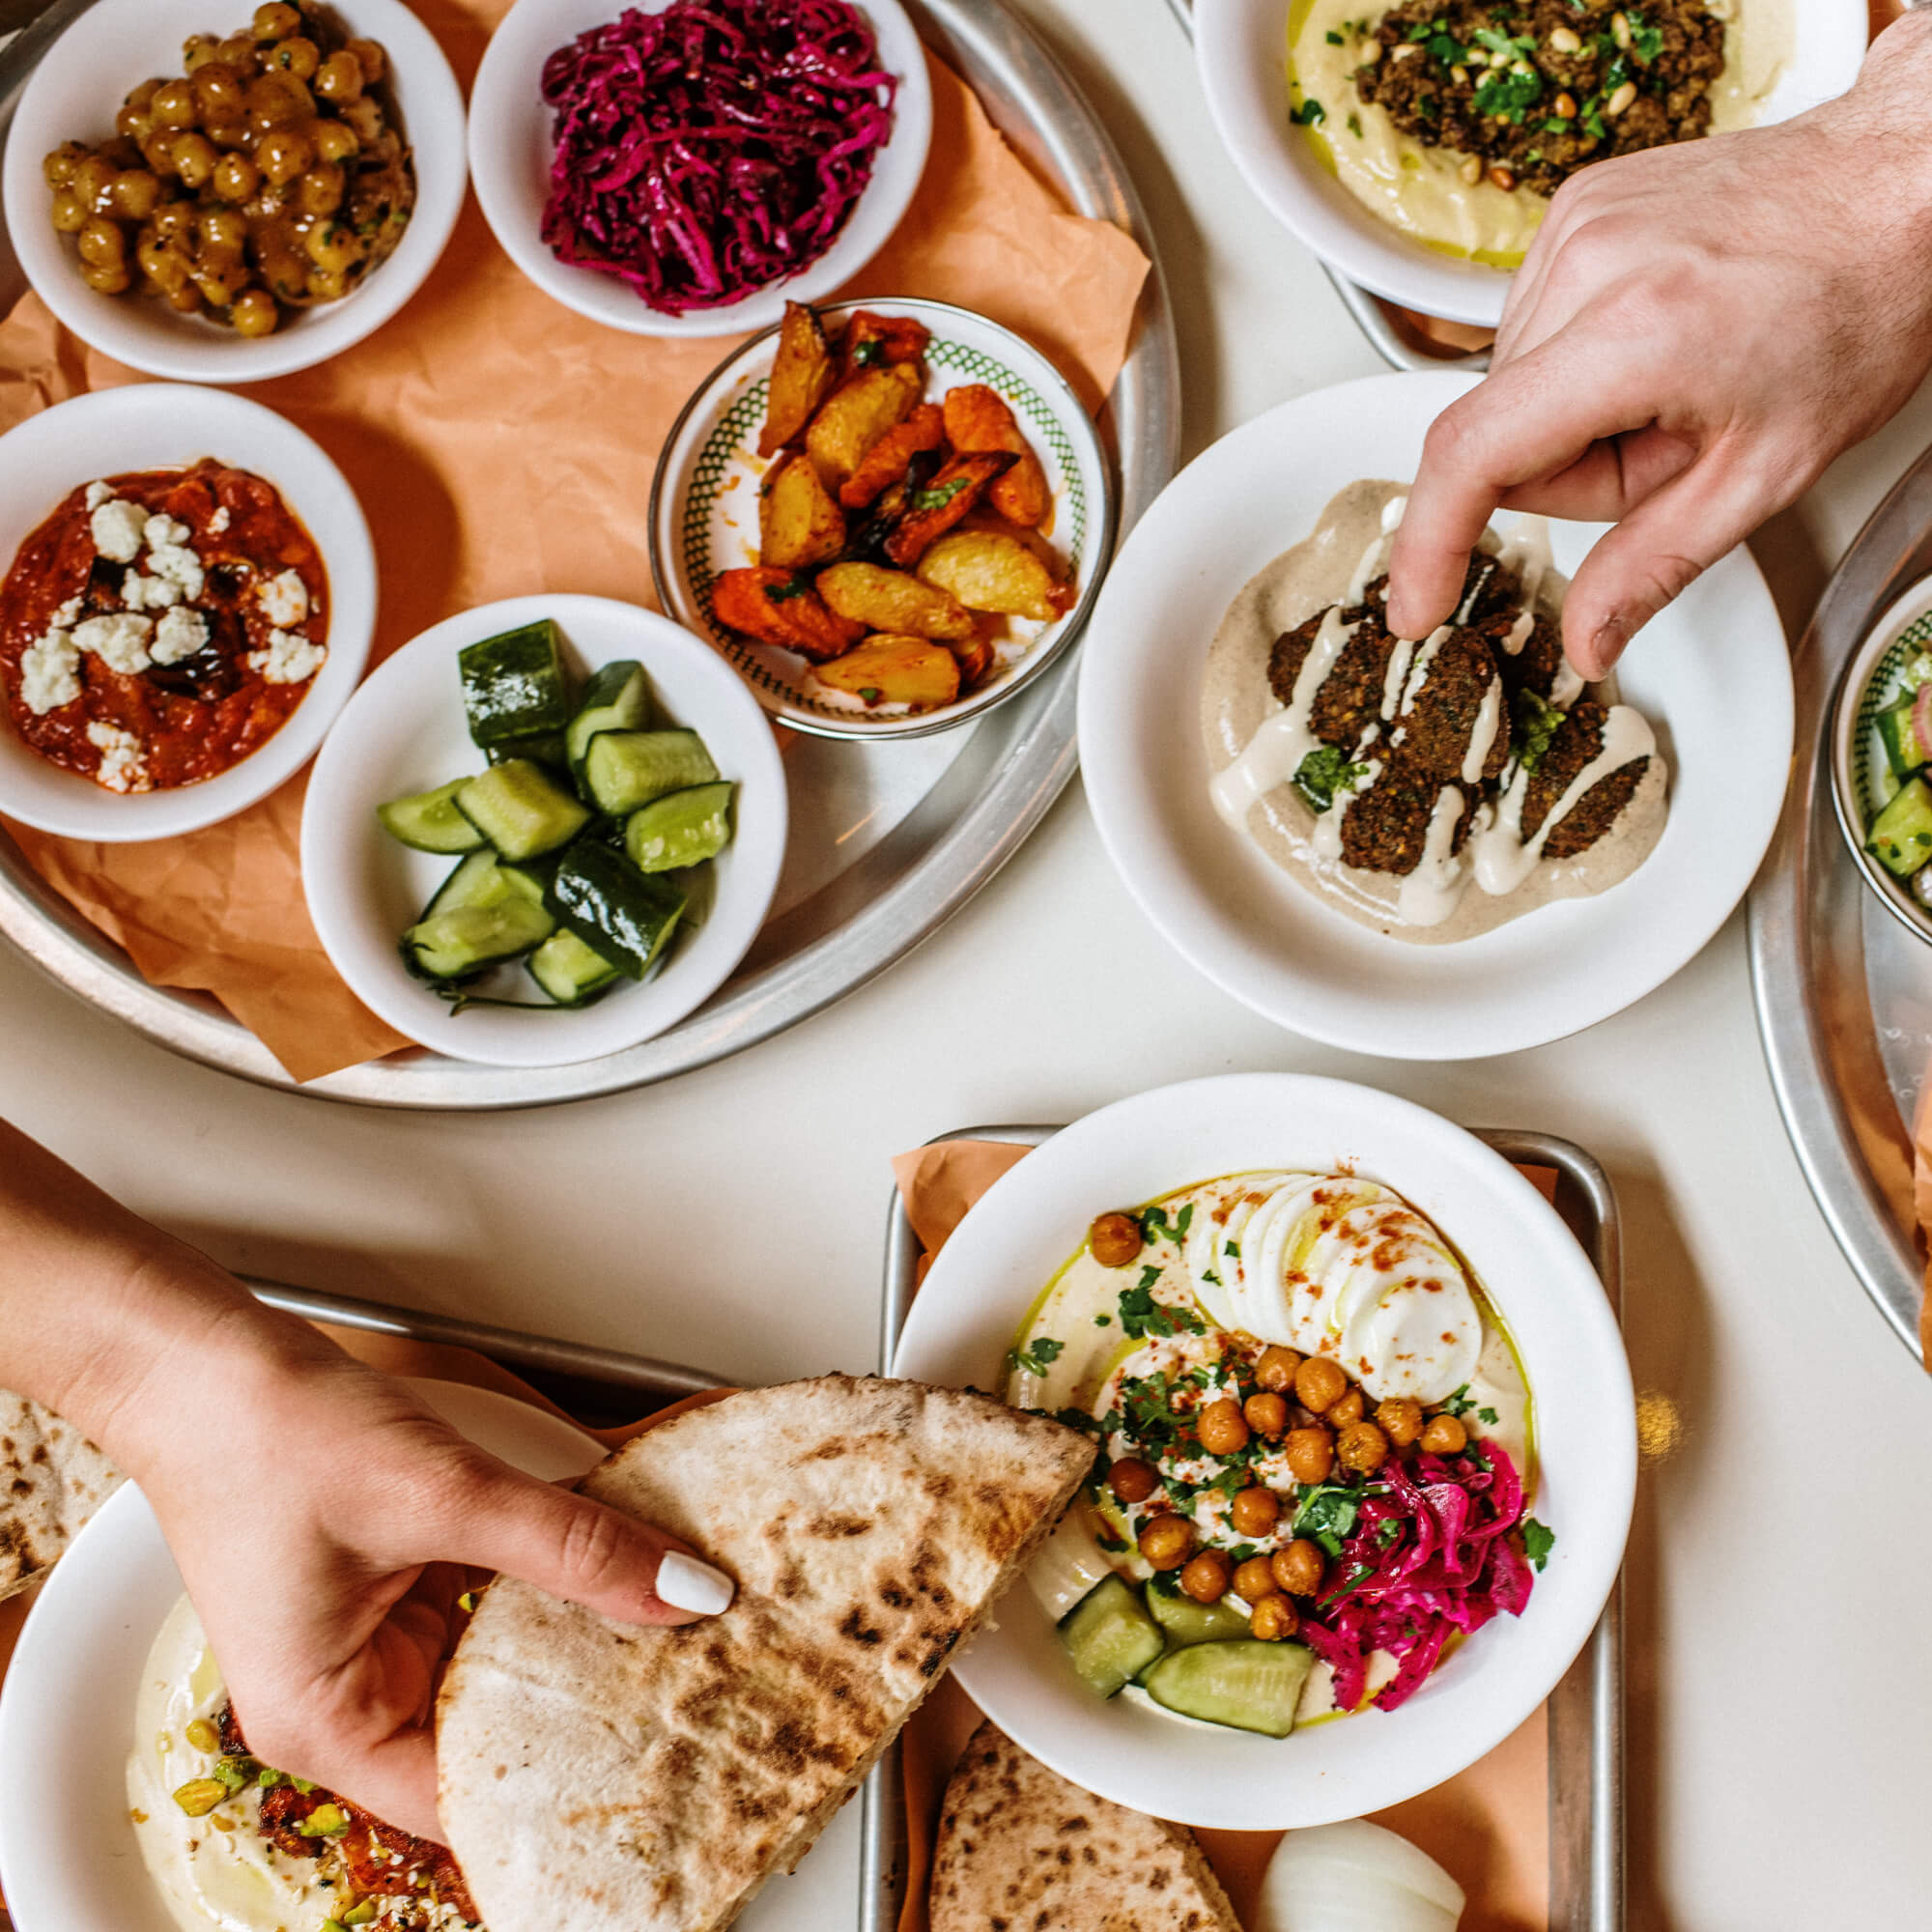 two hands eating an assortment of Mediterranean food dishes